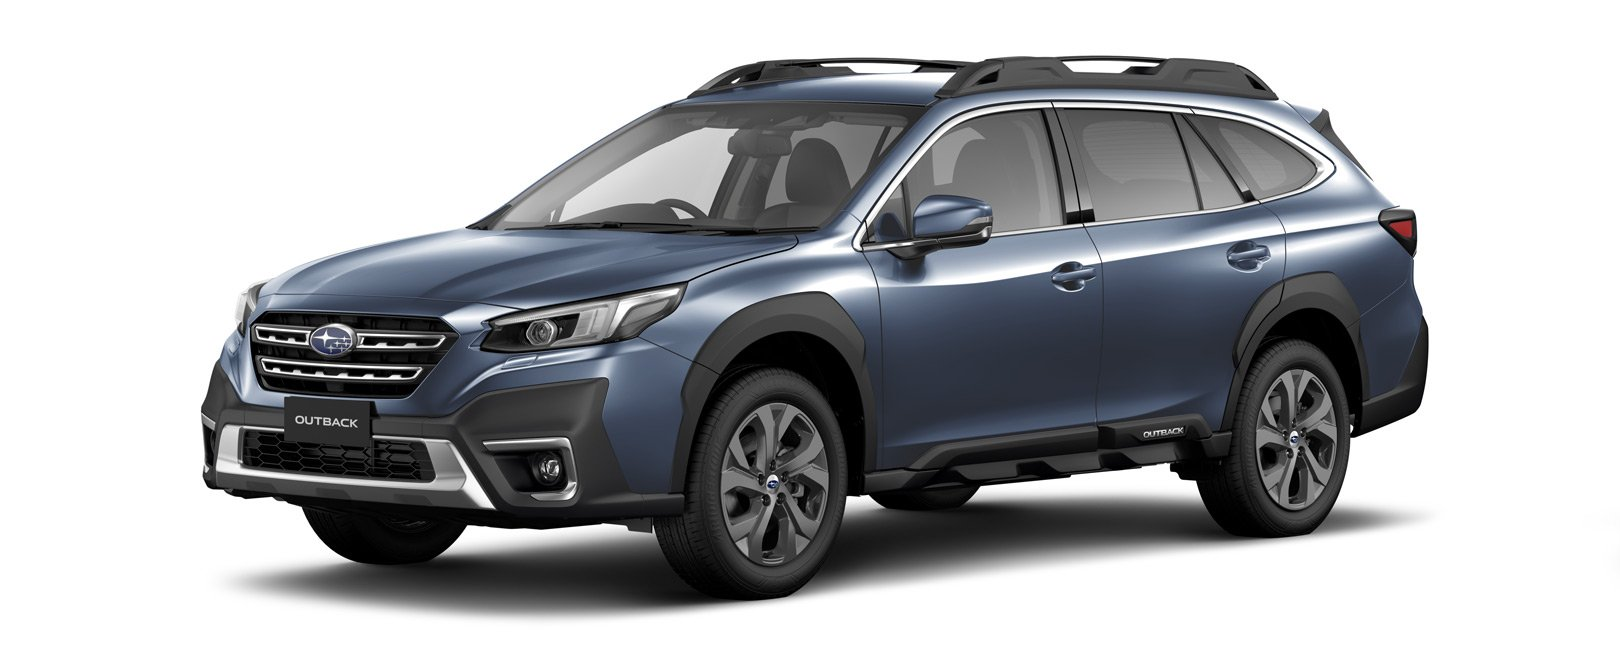 2021 Outback - storm grey